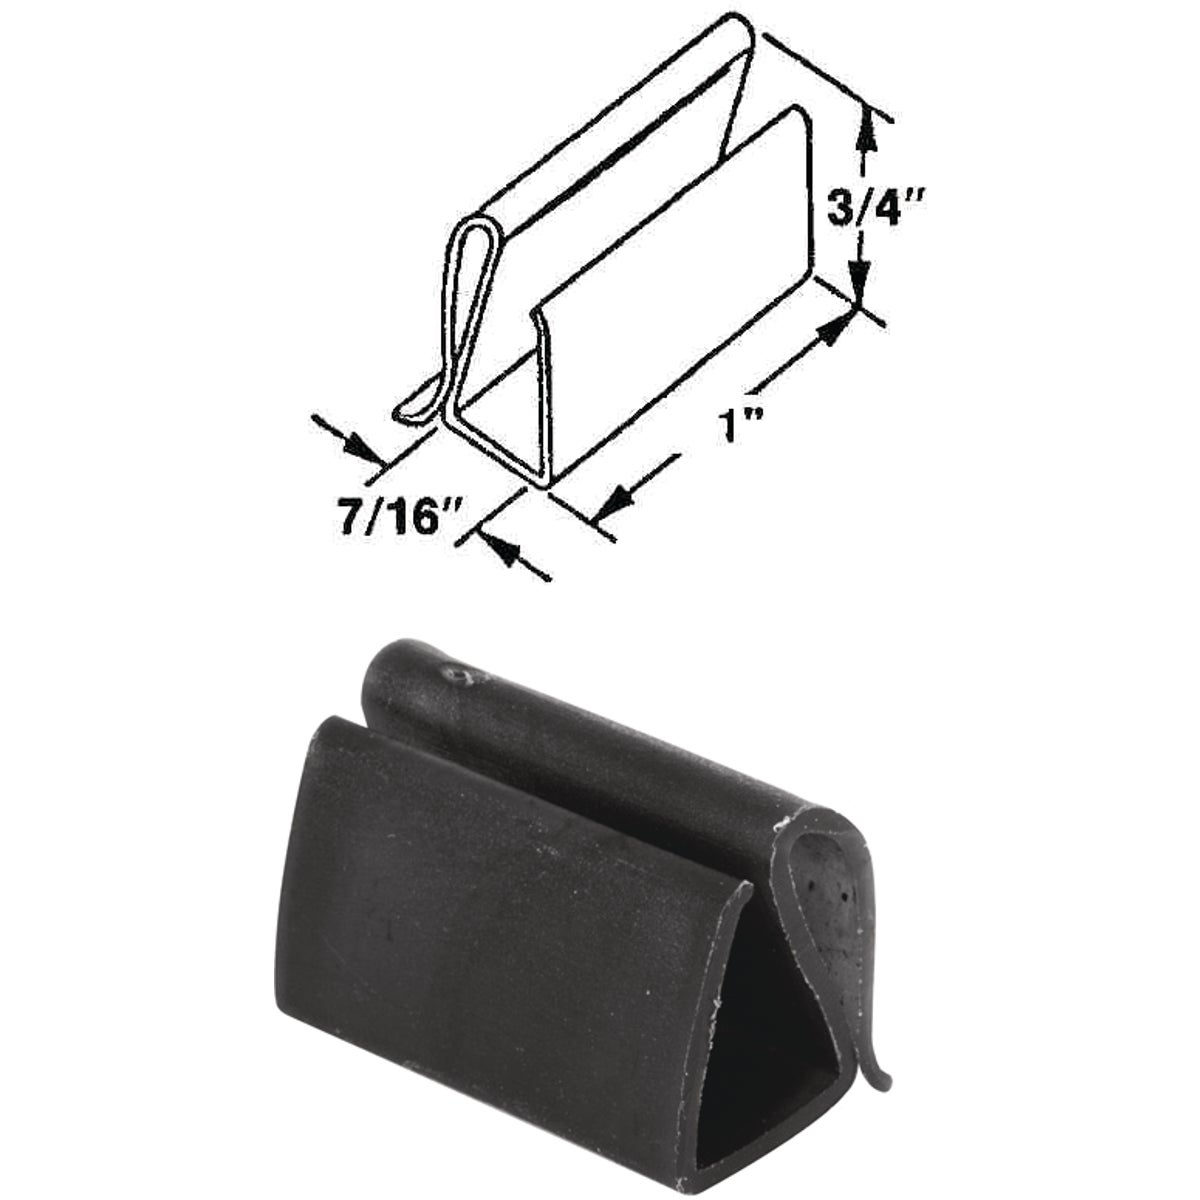 WIND SCREEN PLASTIC CLIP - 1890 by Prime Line Products